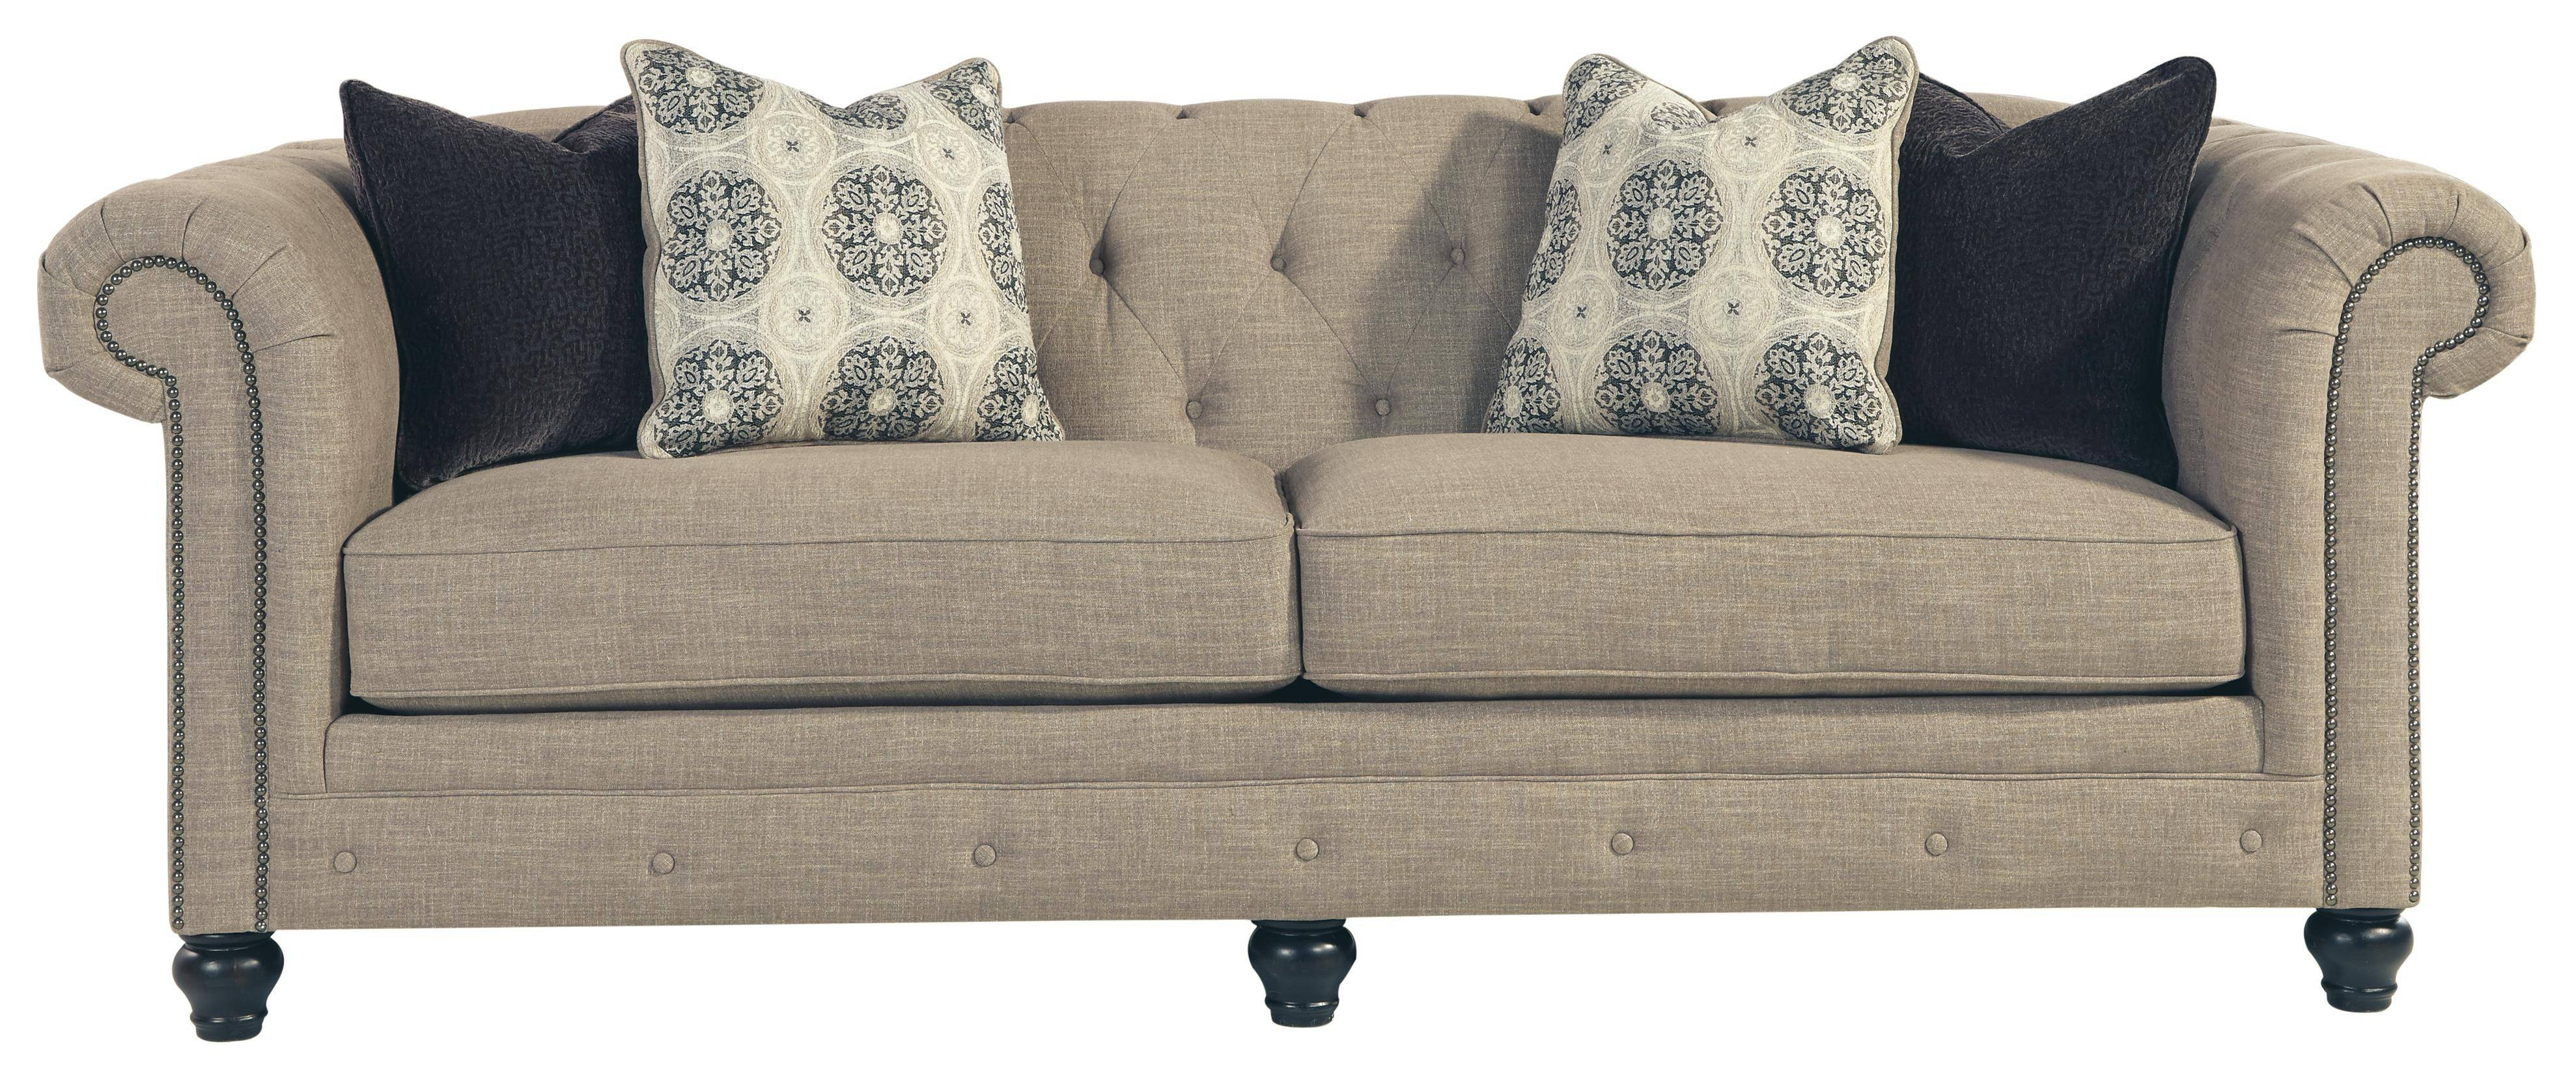 Benchcraft Azlyn Transitional Chesterfield Sofa With Linen Blend With Ashley Tufted Sofa (Image 7 of 30)